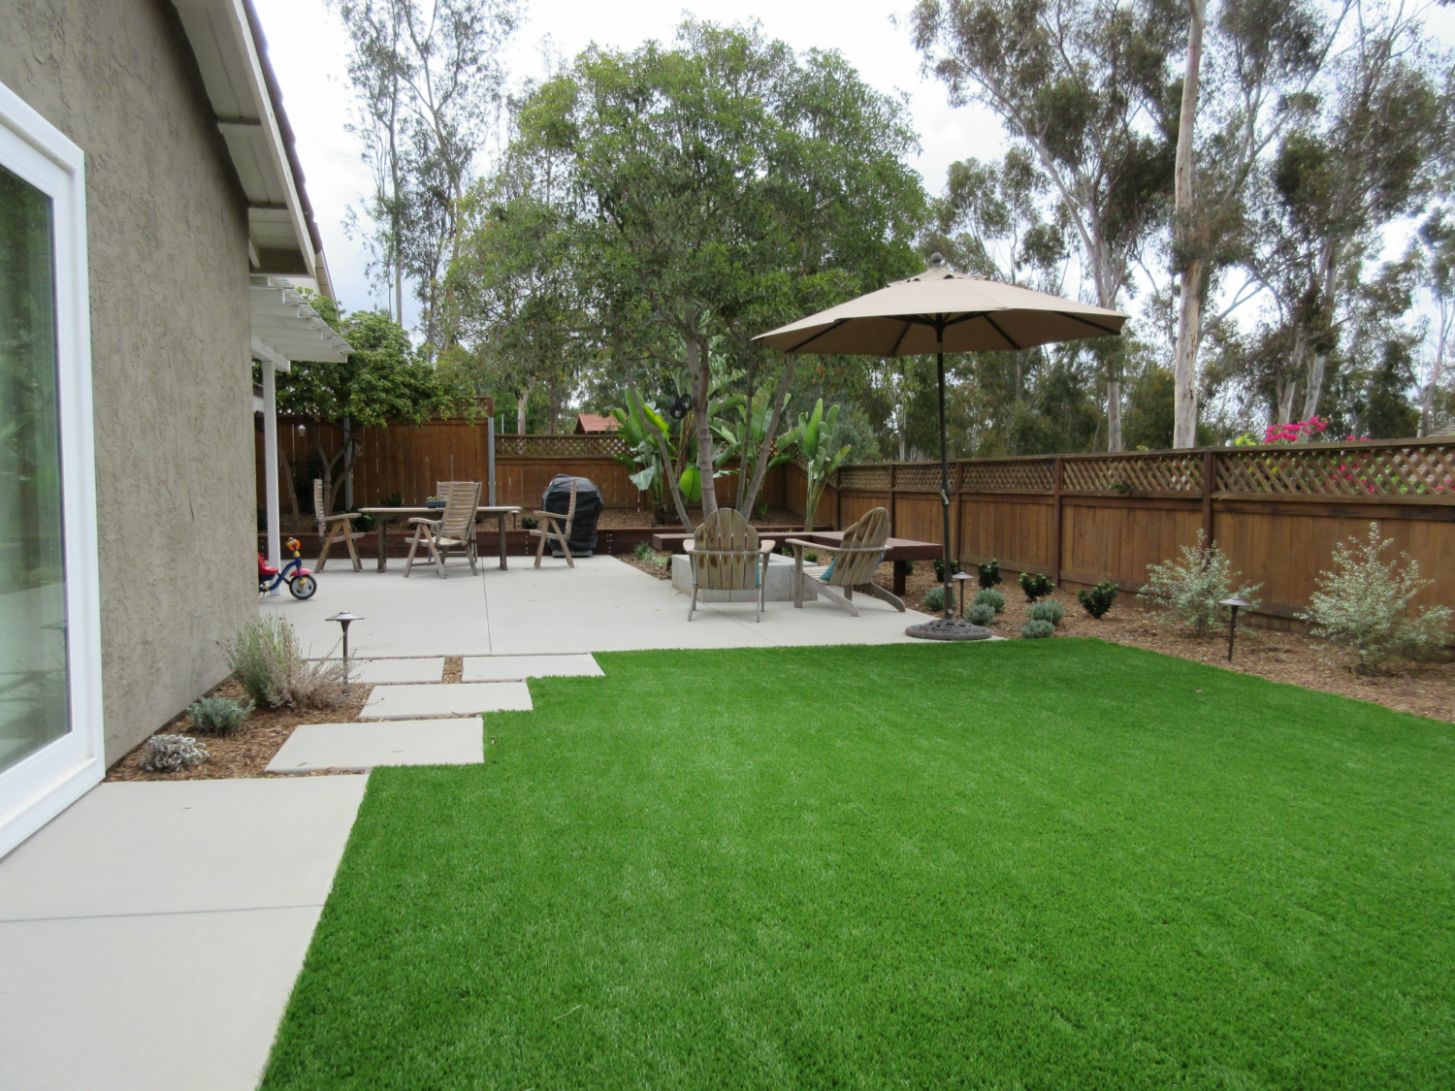 San Diego Backyard Designs - Letz Design